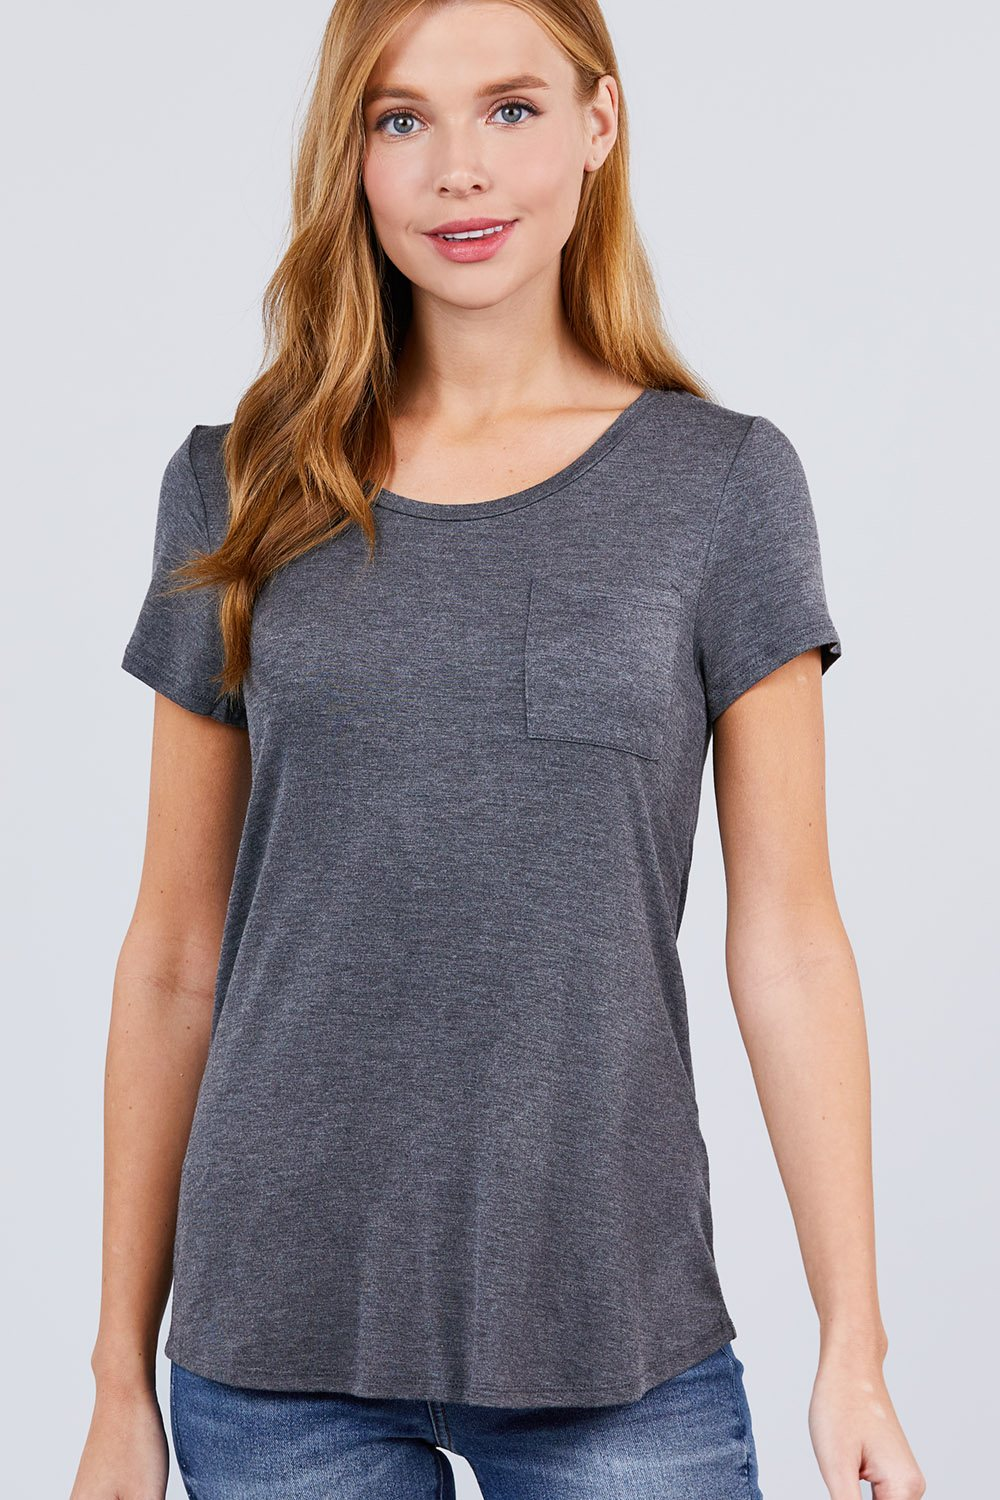 Active Boutique Charcoal Gray Short Sleeve Scoop Neck Top With Pocket